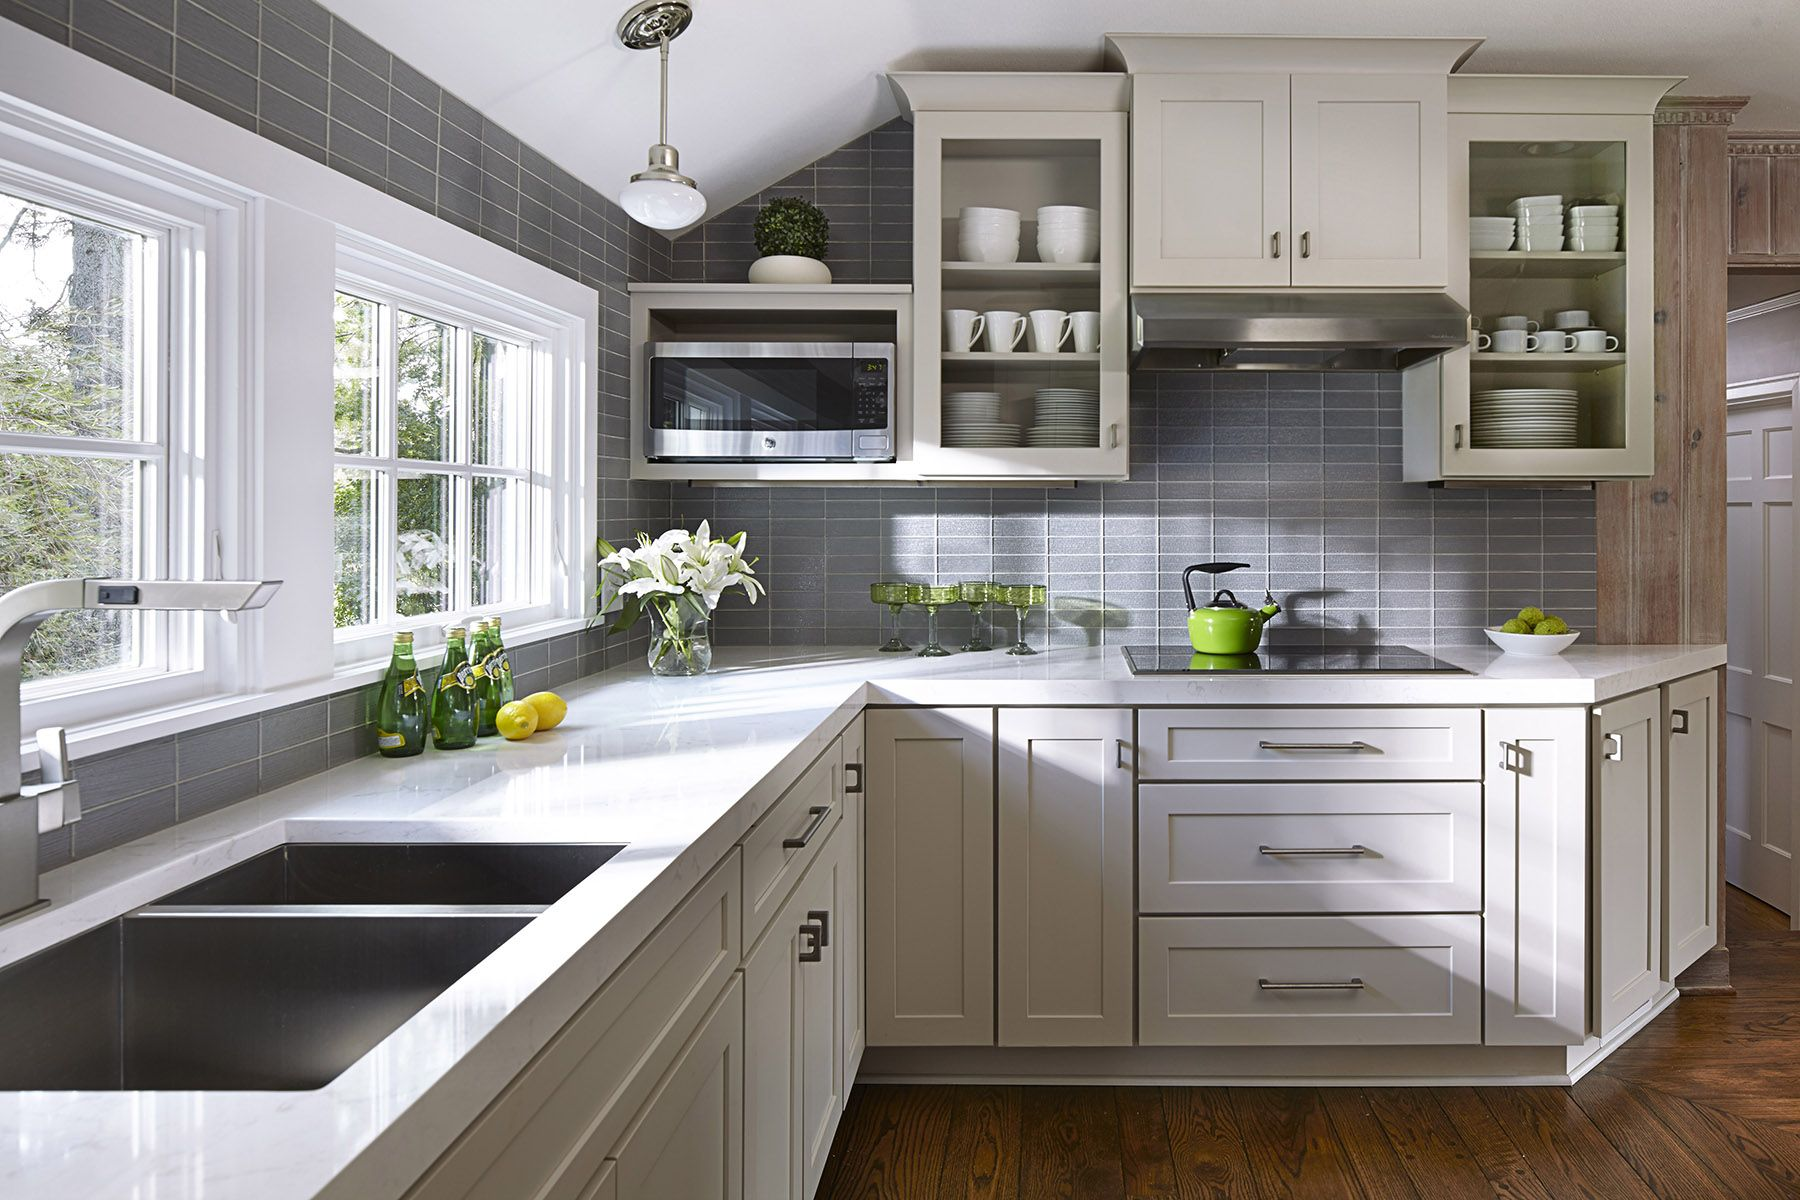 Kitchen design in austin with flat panel cabinets stainless steel - Gray Tiles Shape A Lovely Background In The Small Kitchen Design Cliqstudios Cabinets